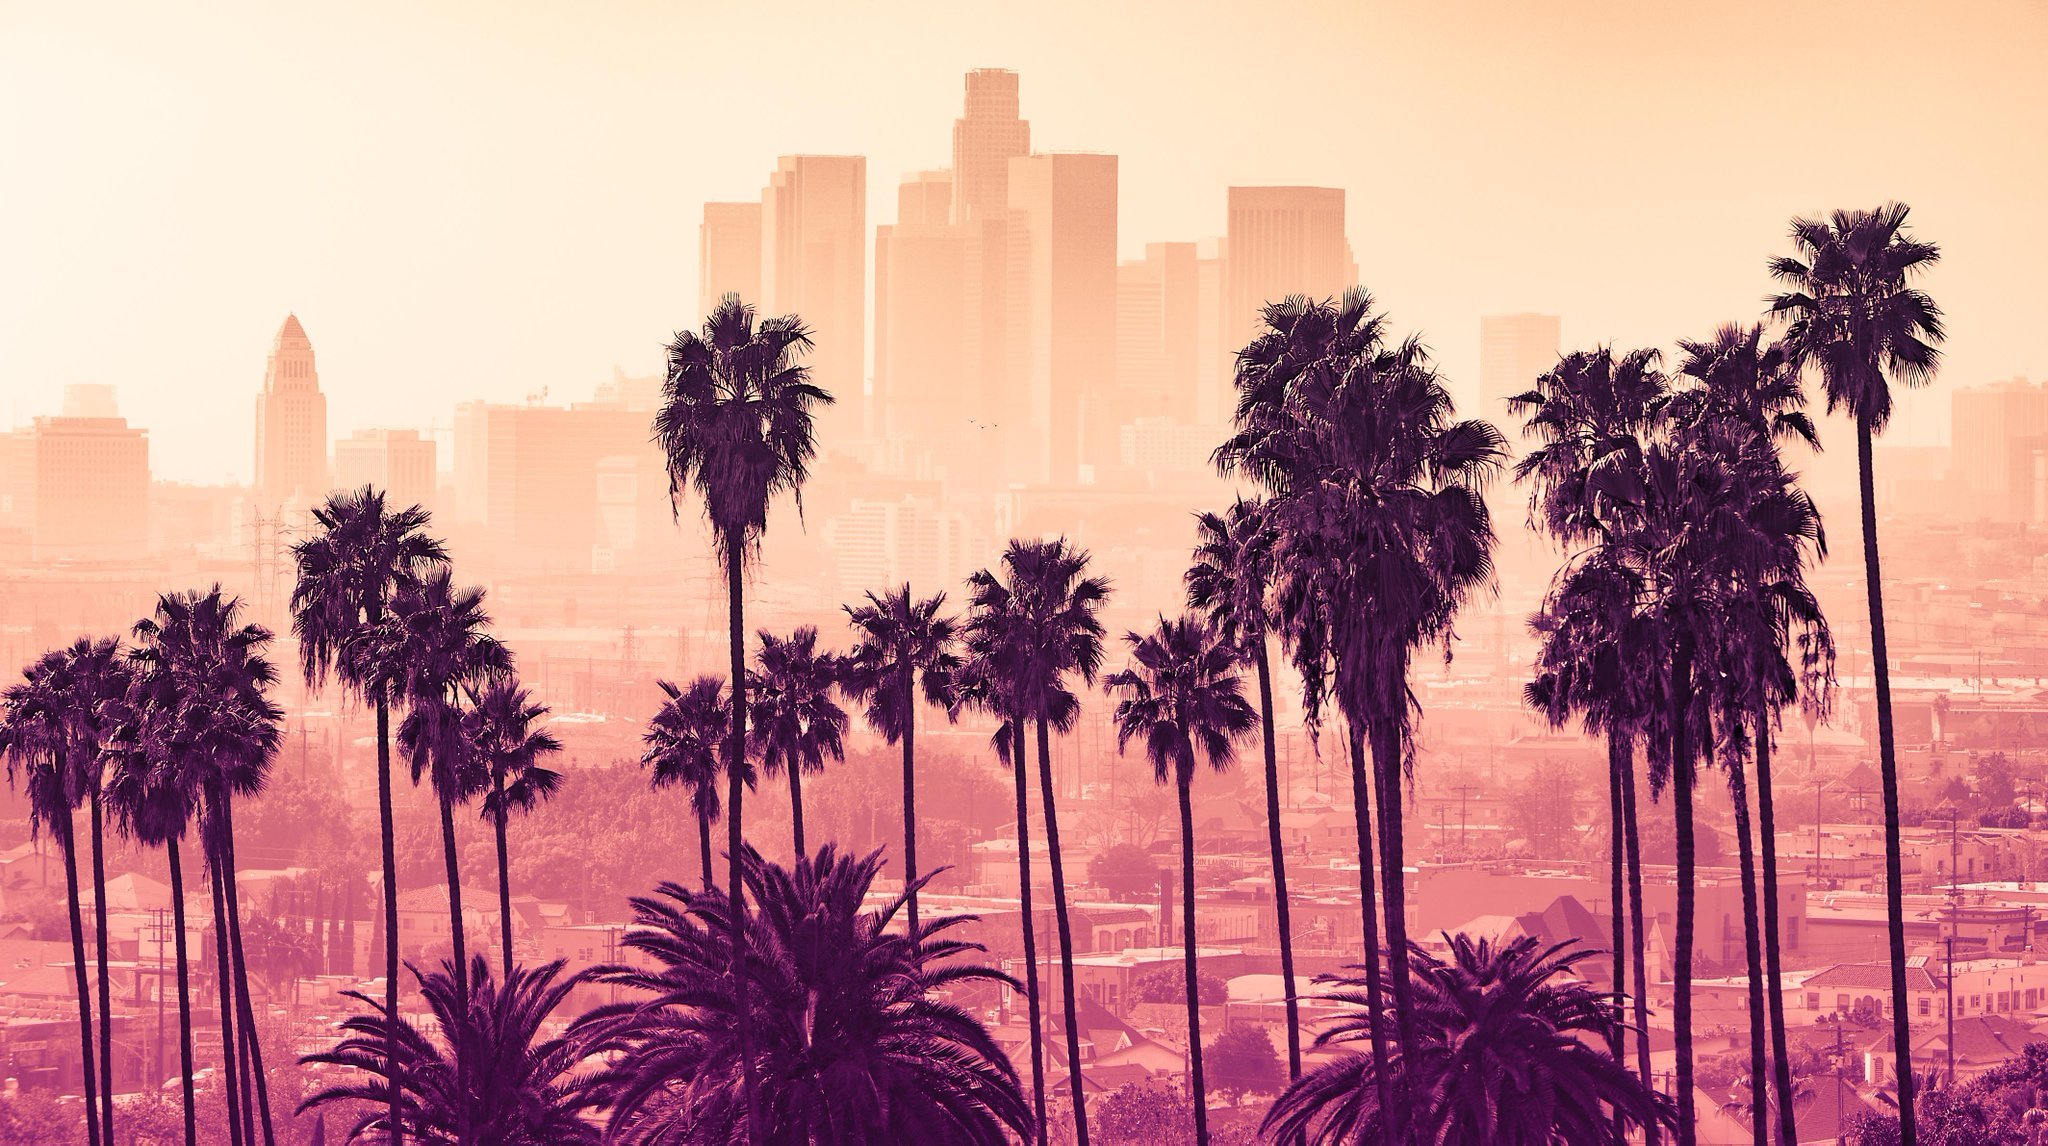 NEW: Los Angeles officially awarded the 2028 Summer @Olympics; Paris awarded the 2024 Games: https://t.co/ITwxCkQAb9 https://t.co/ne5LI93RdE